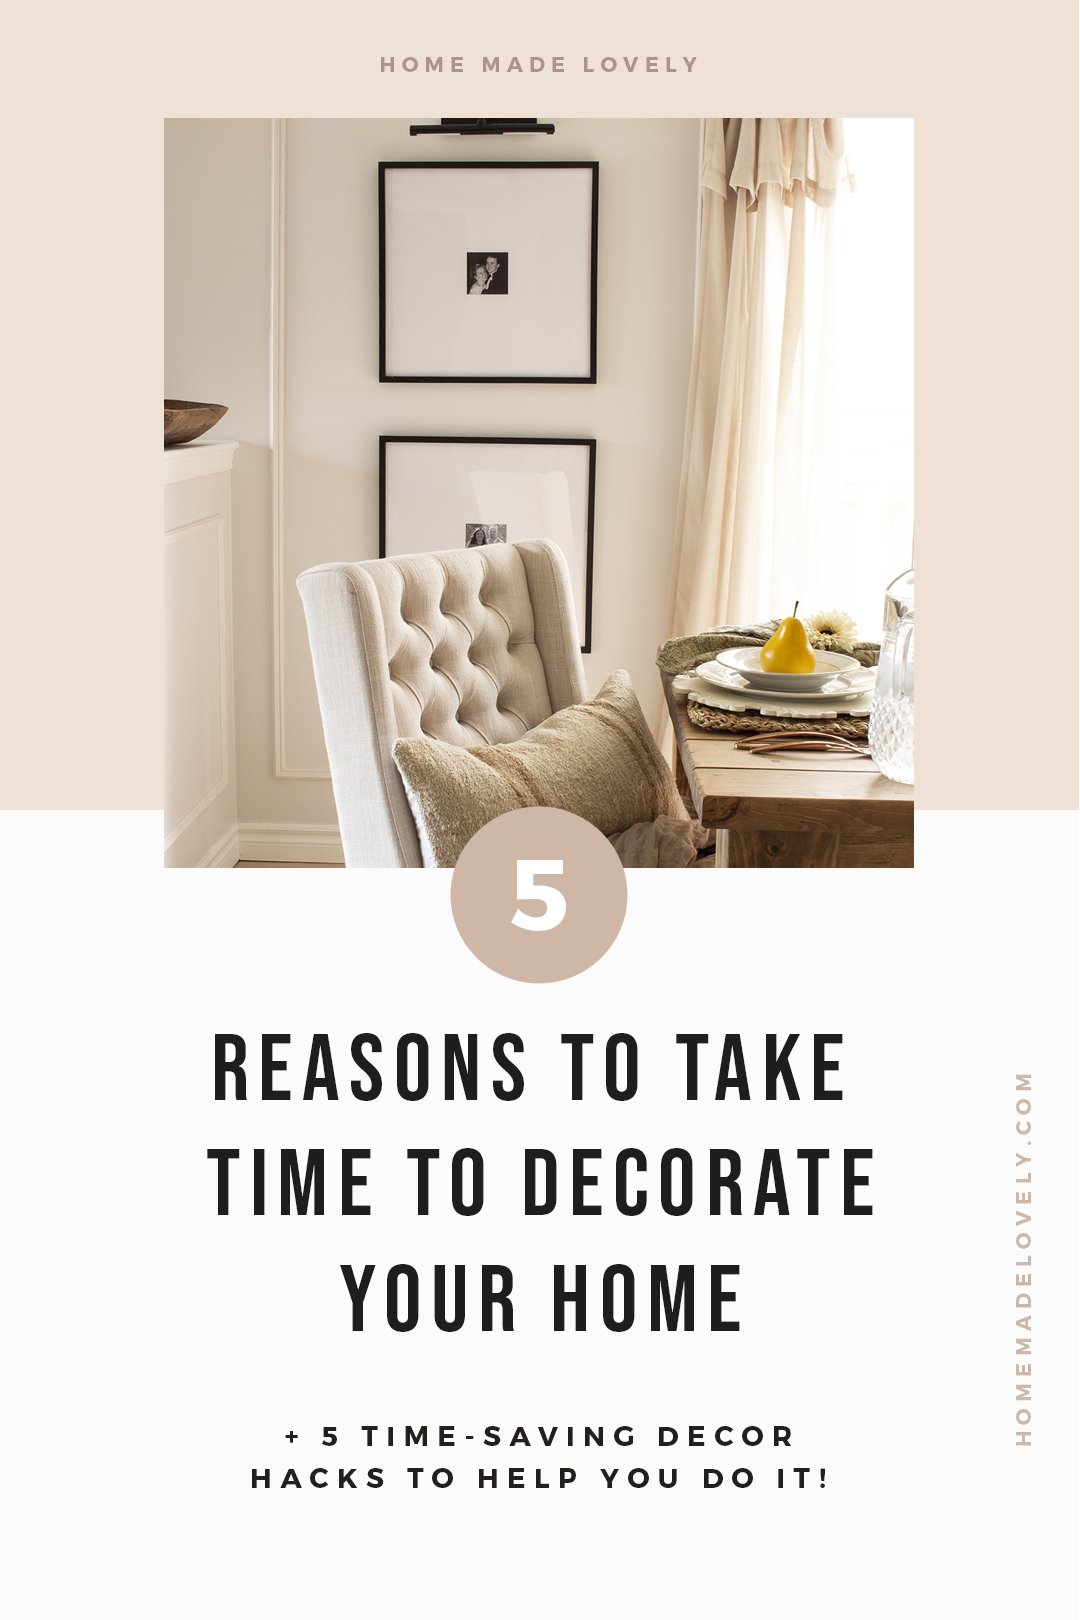 5 Reasons to Take Time to Decorate Your Home Plus 5 Time-Saving Hacks